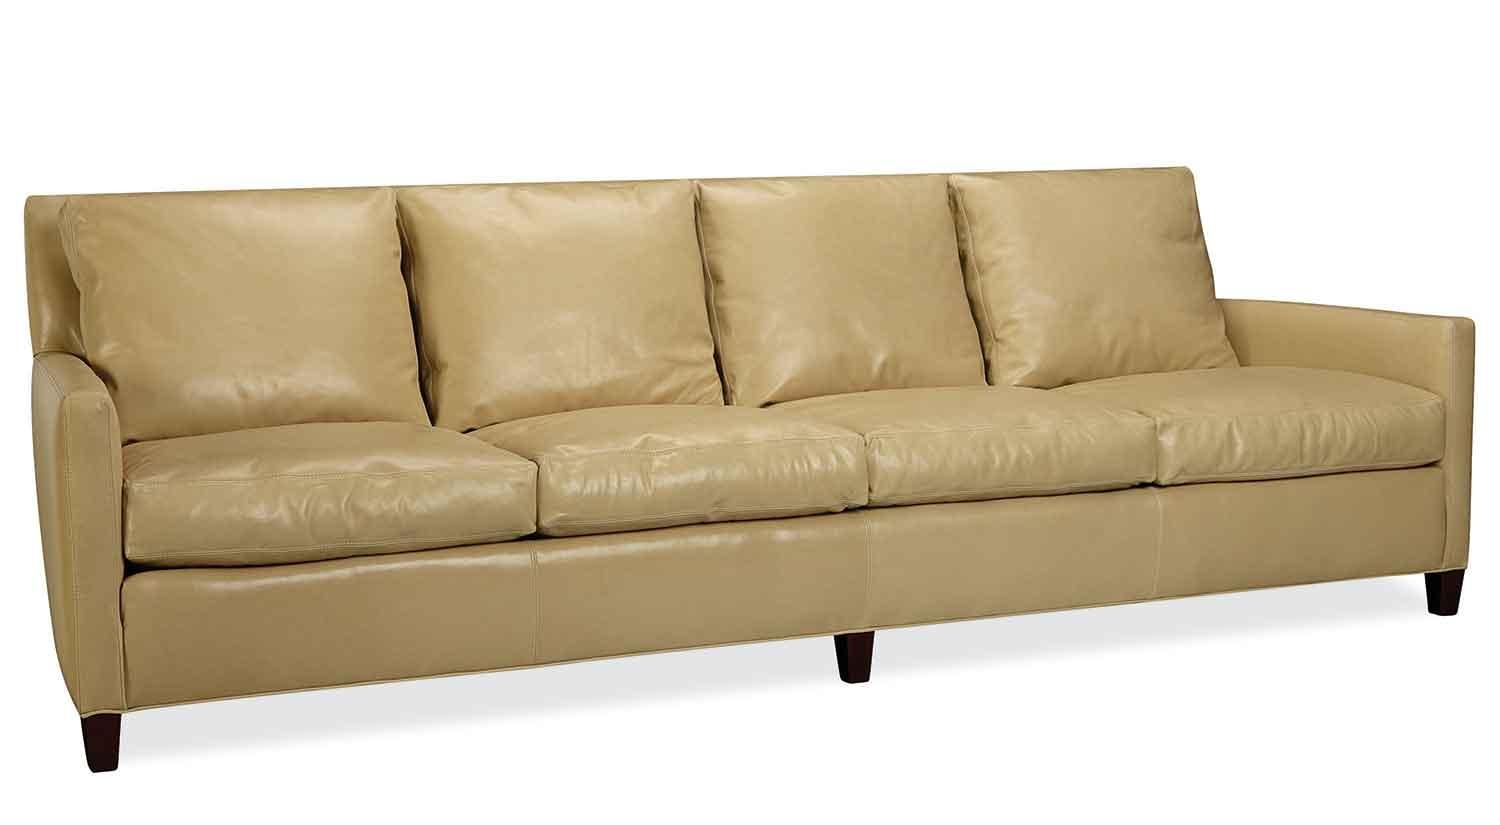 Featured Image of 4 Seat Sofas